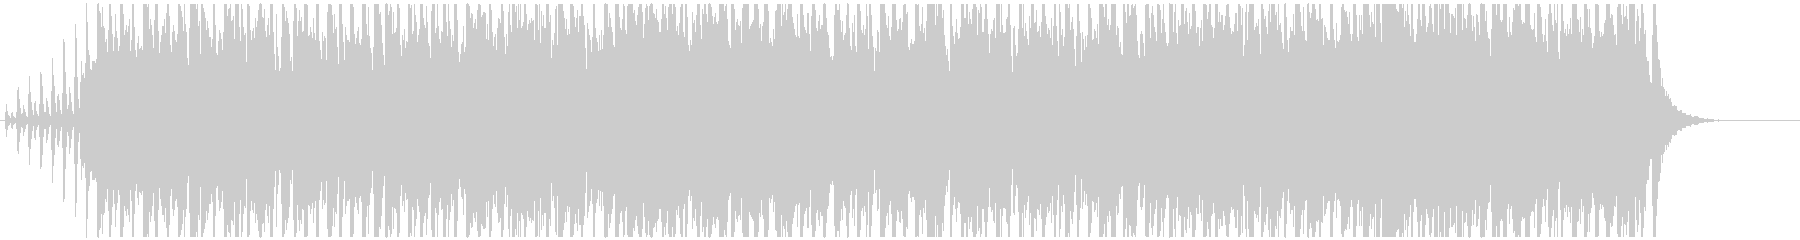 Rhythmic and bright BGM's unreproduced waveform